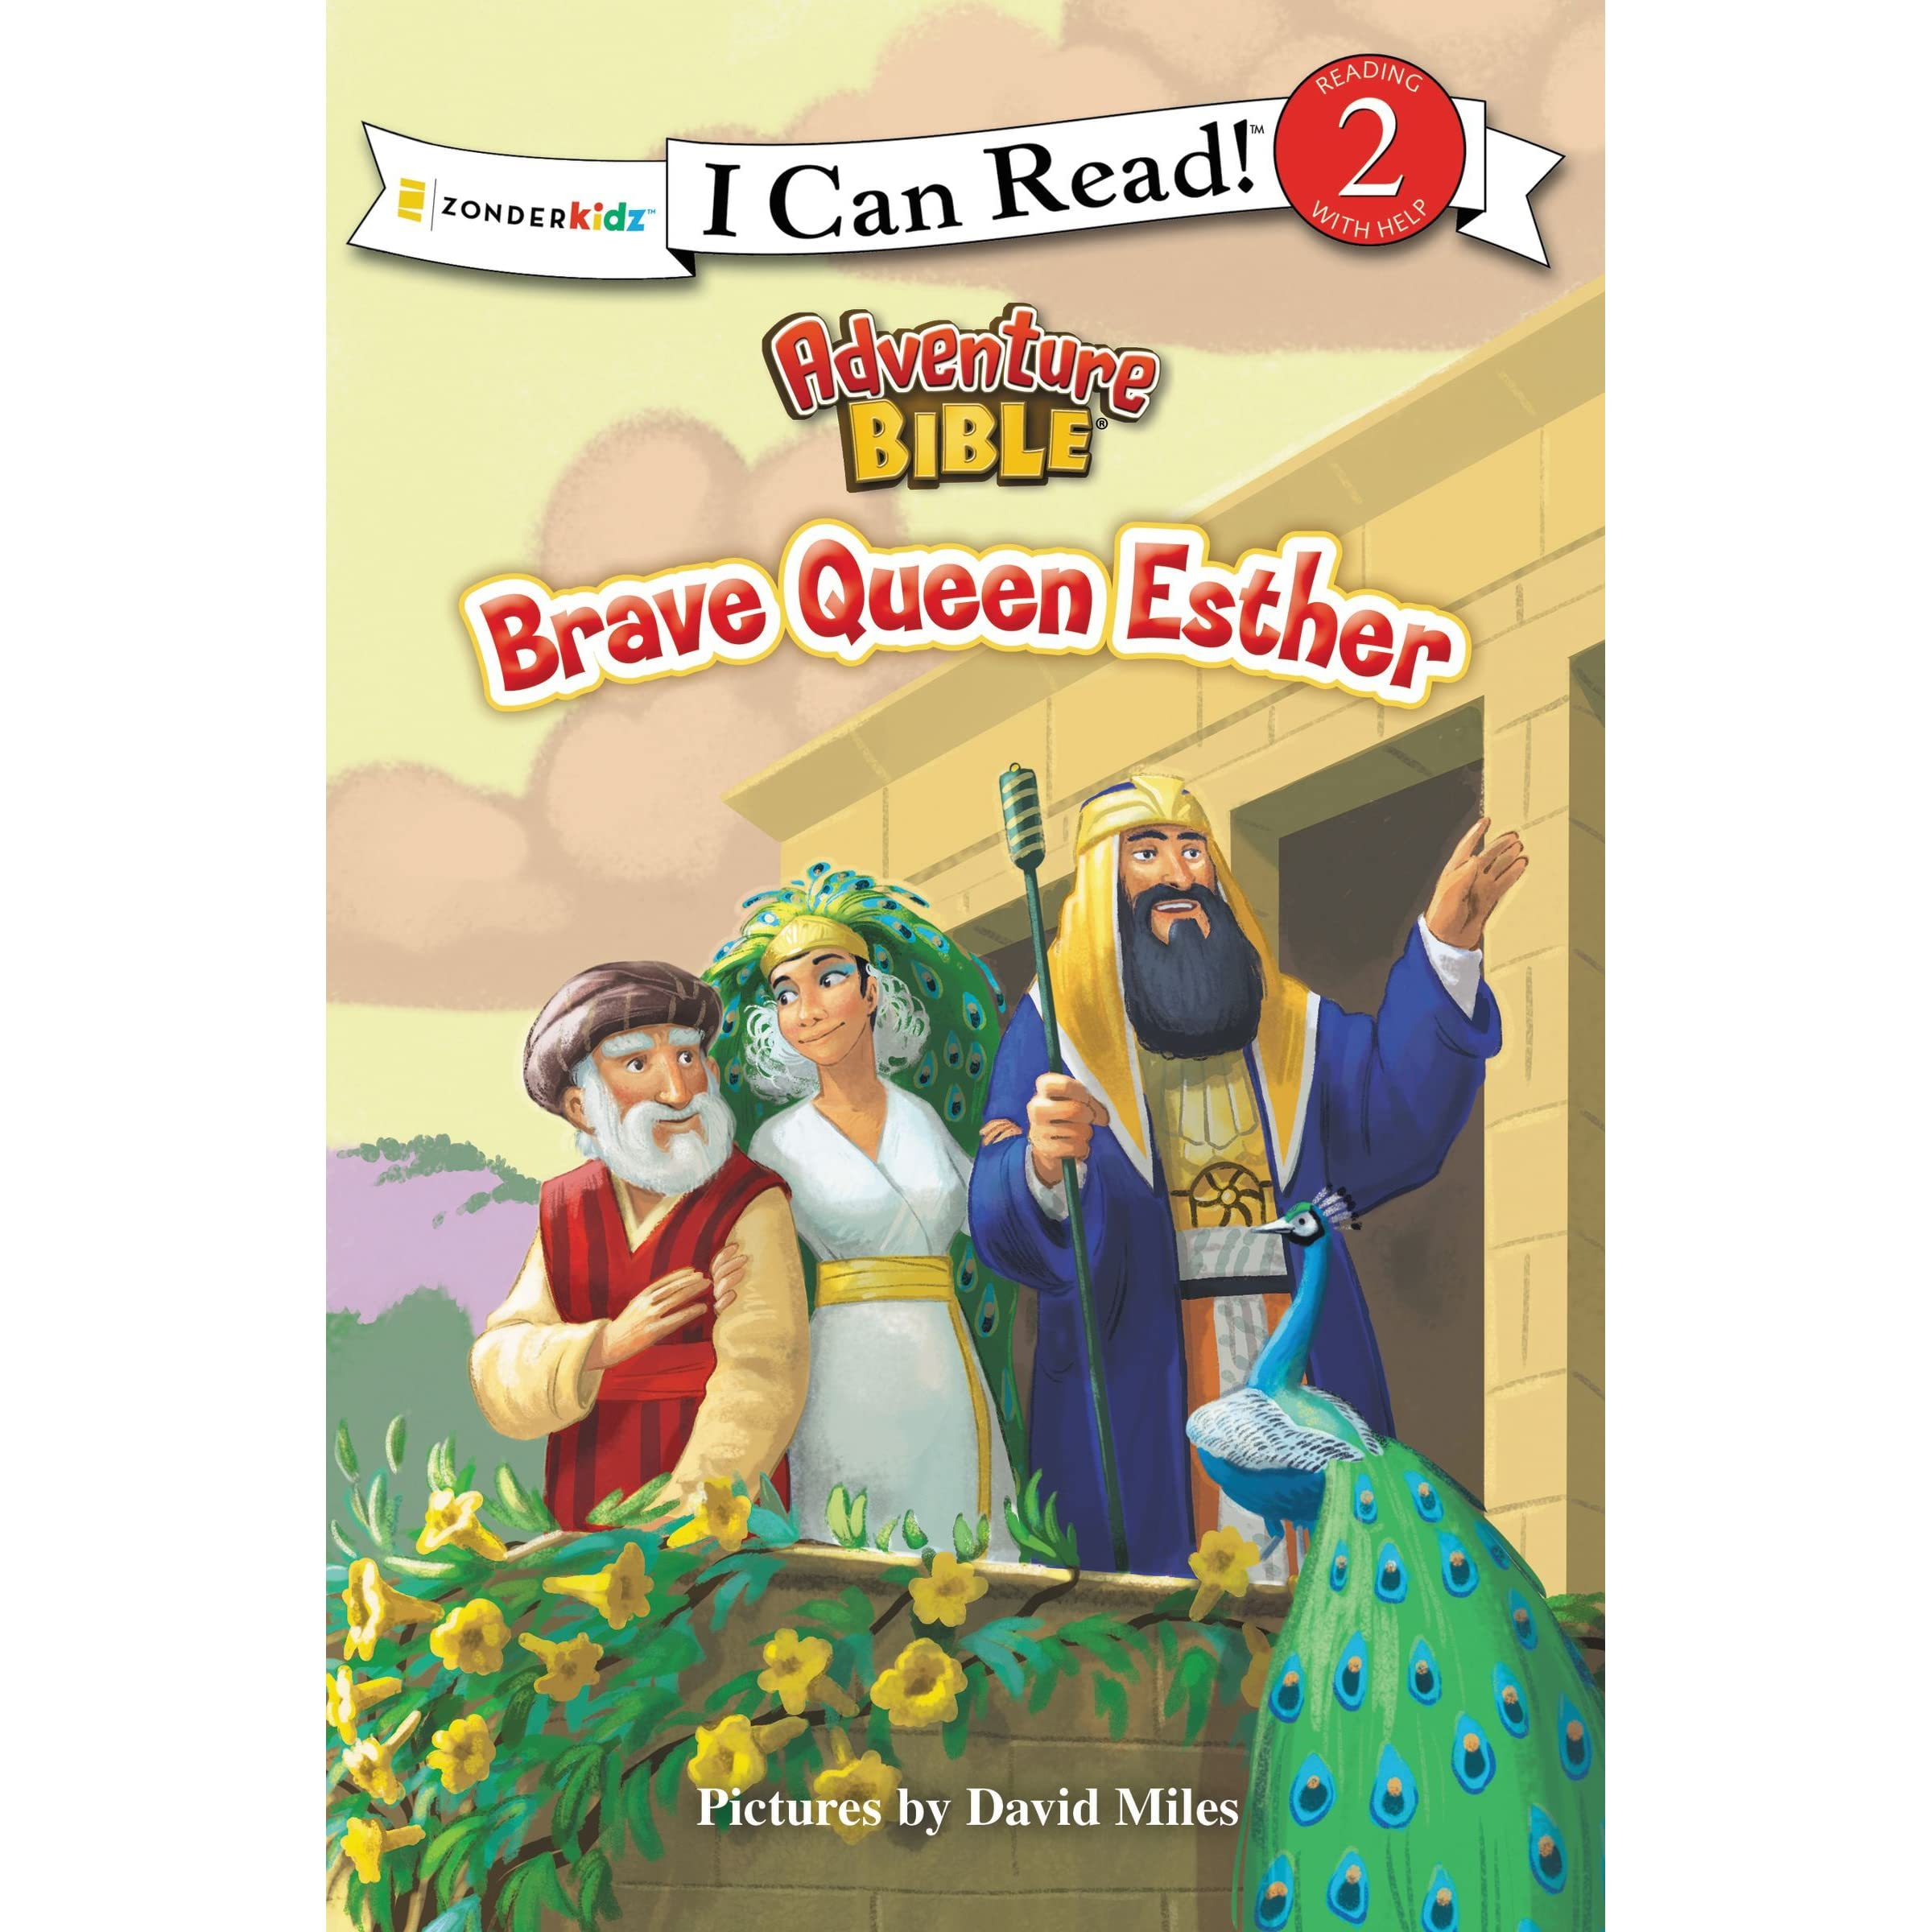 brave queen esther by david miles